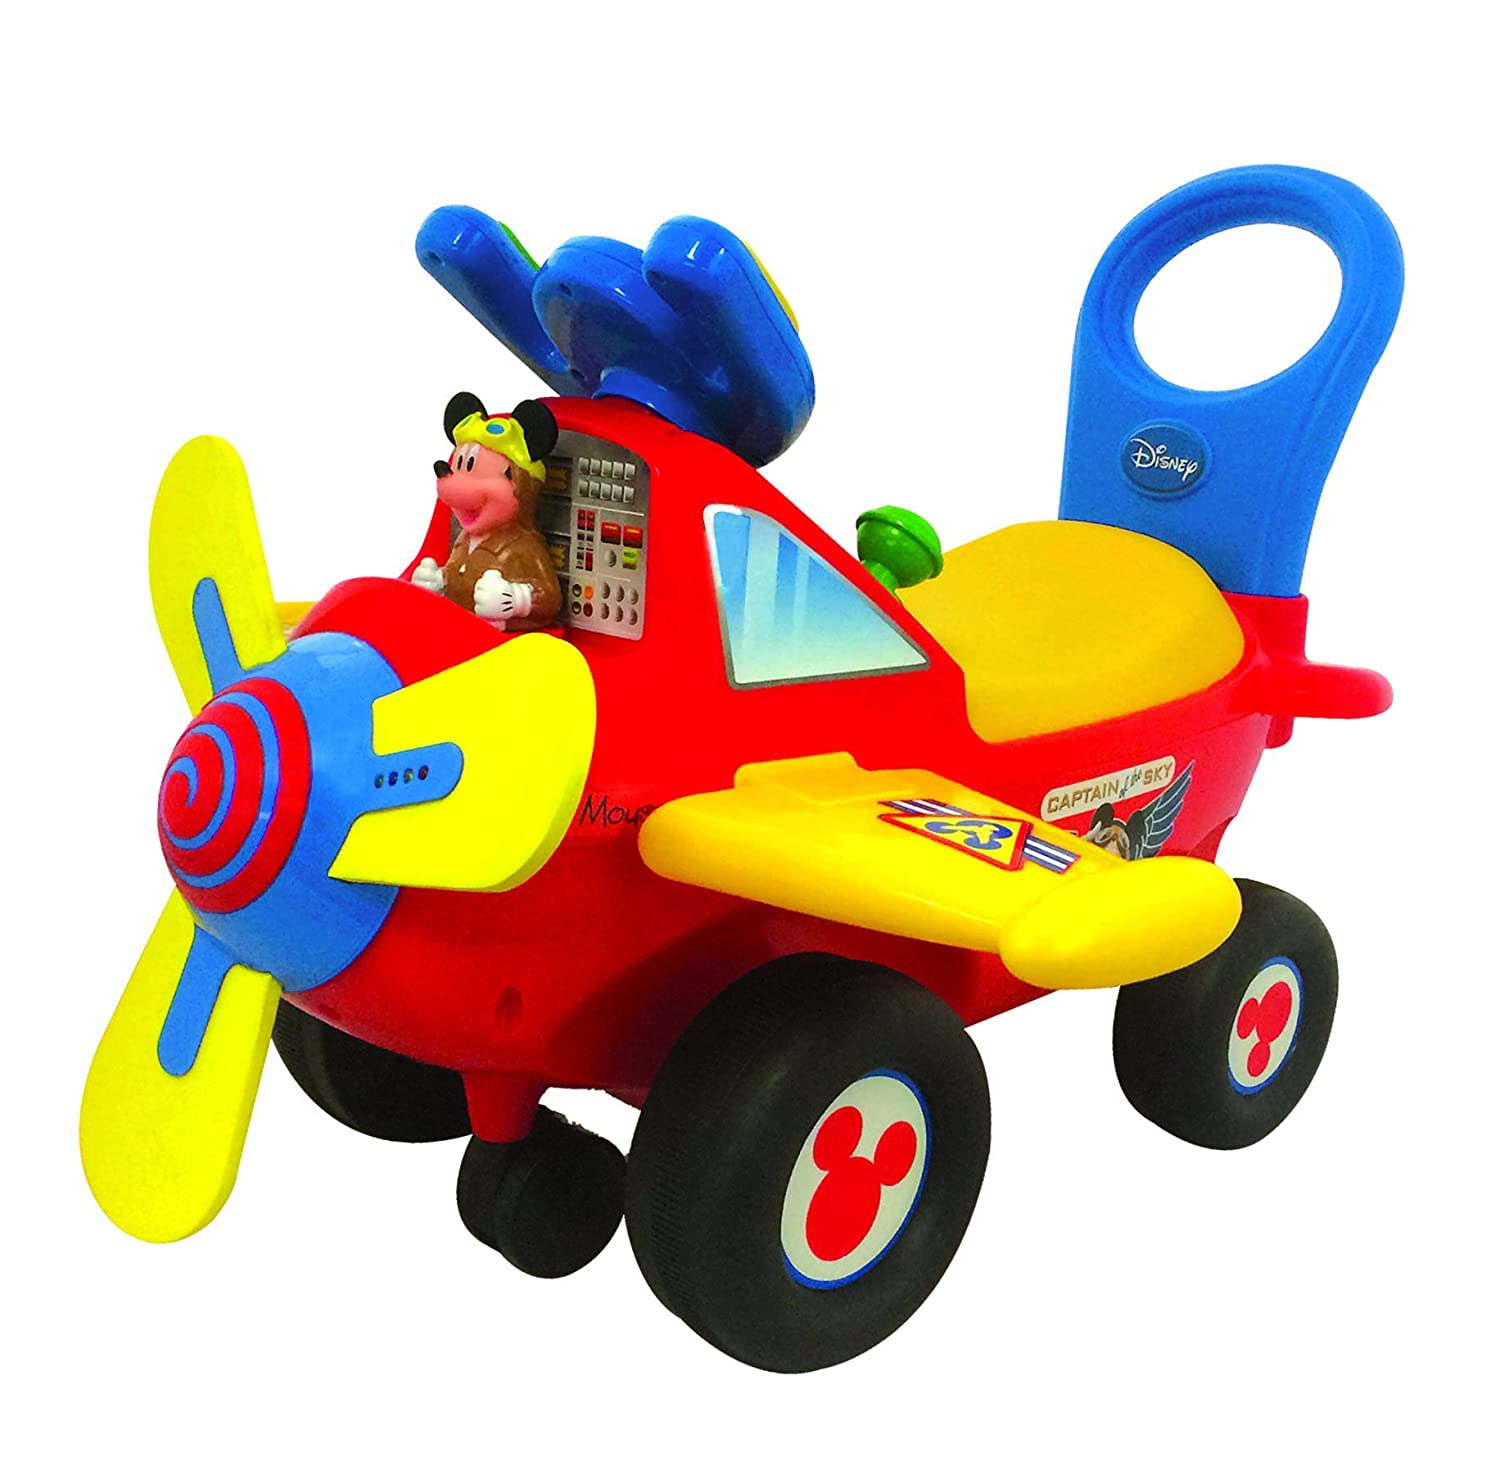 One Year Old Riding Toys : Cool toys for year old boys birthday christmas